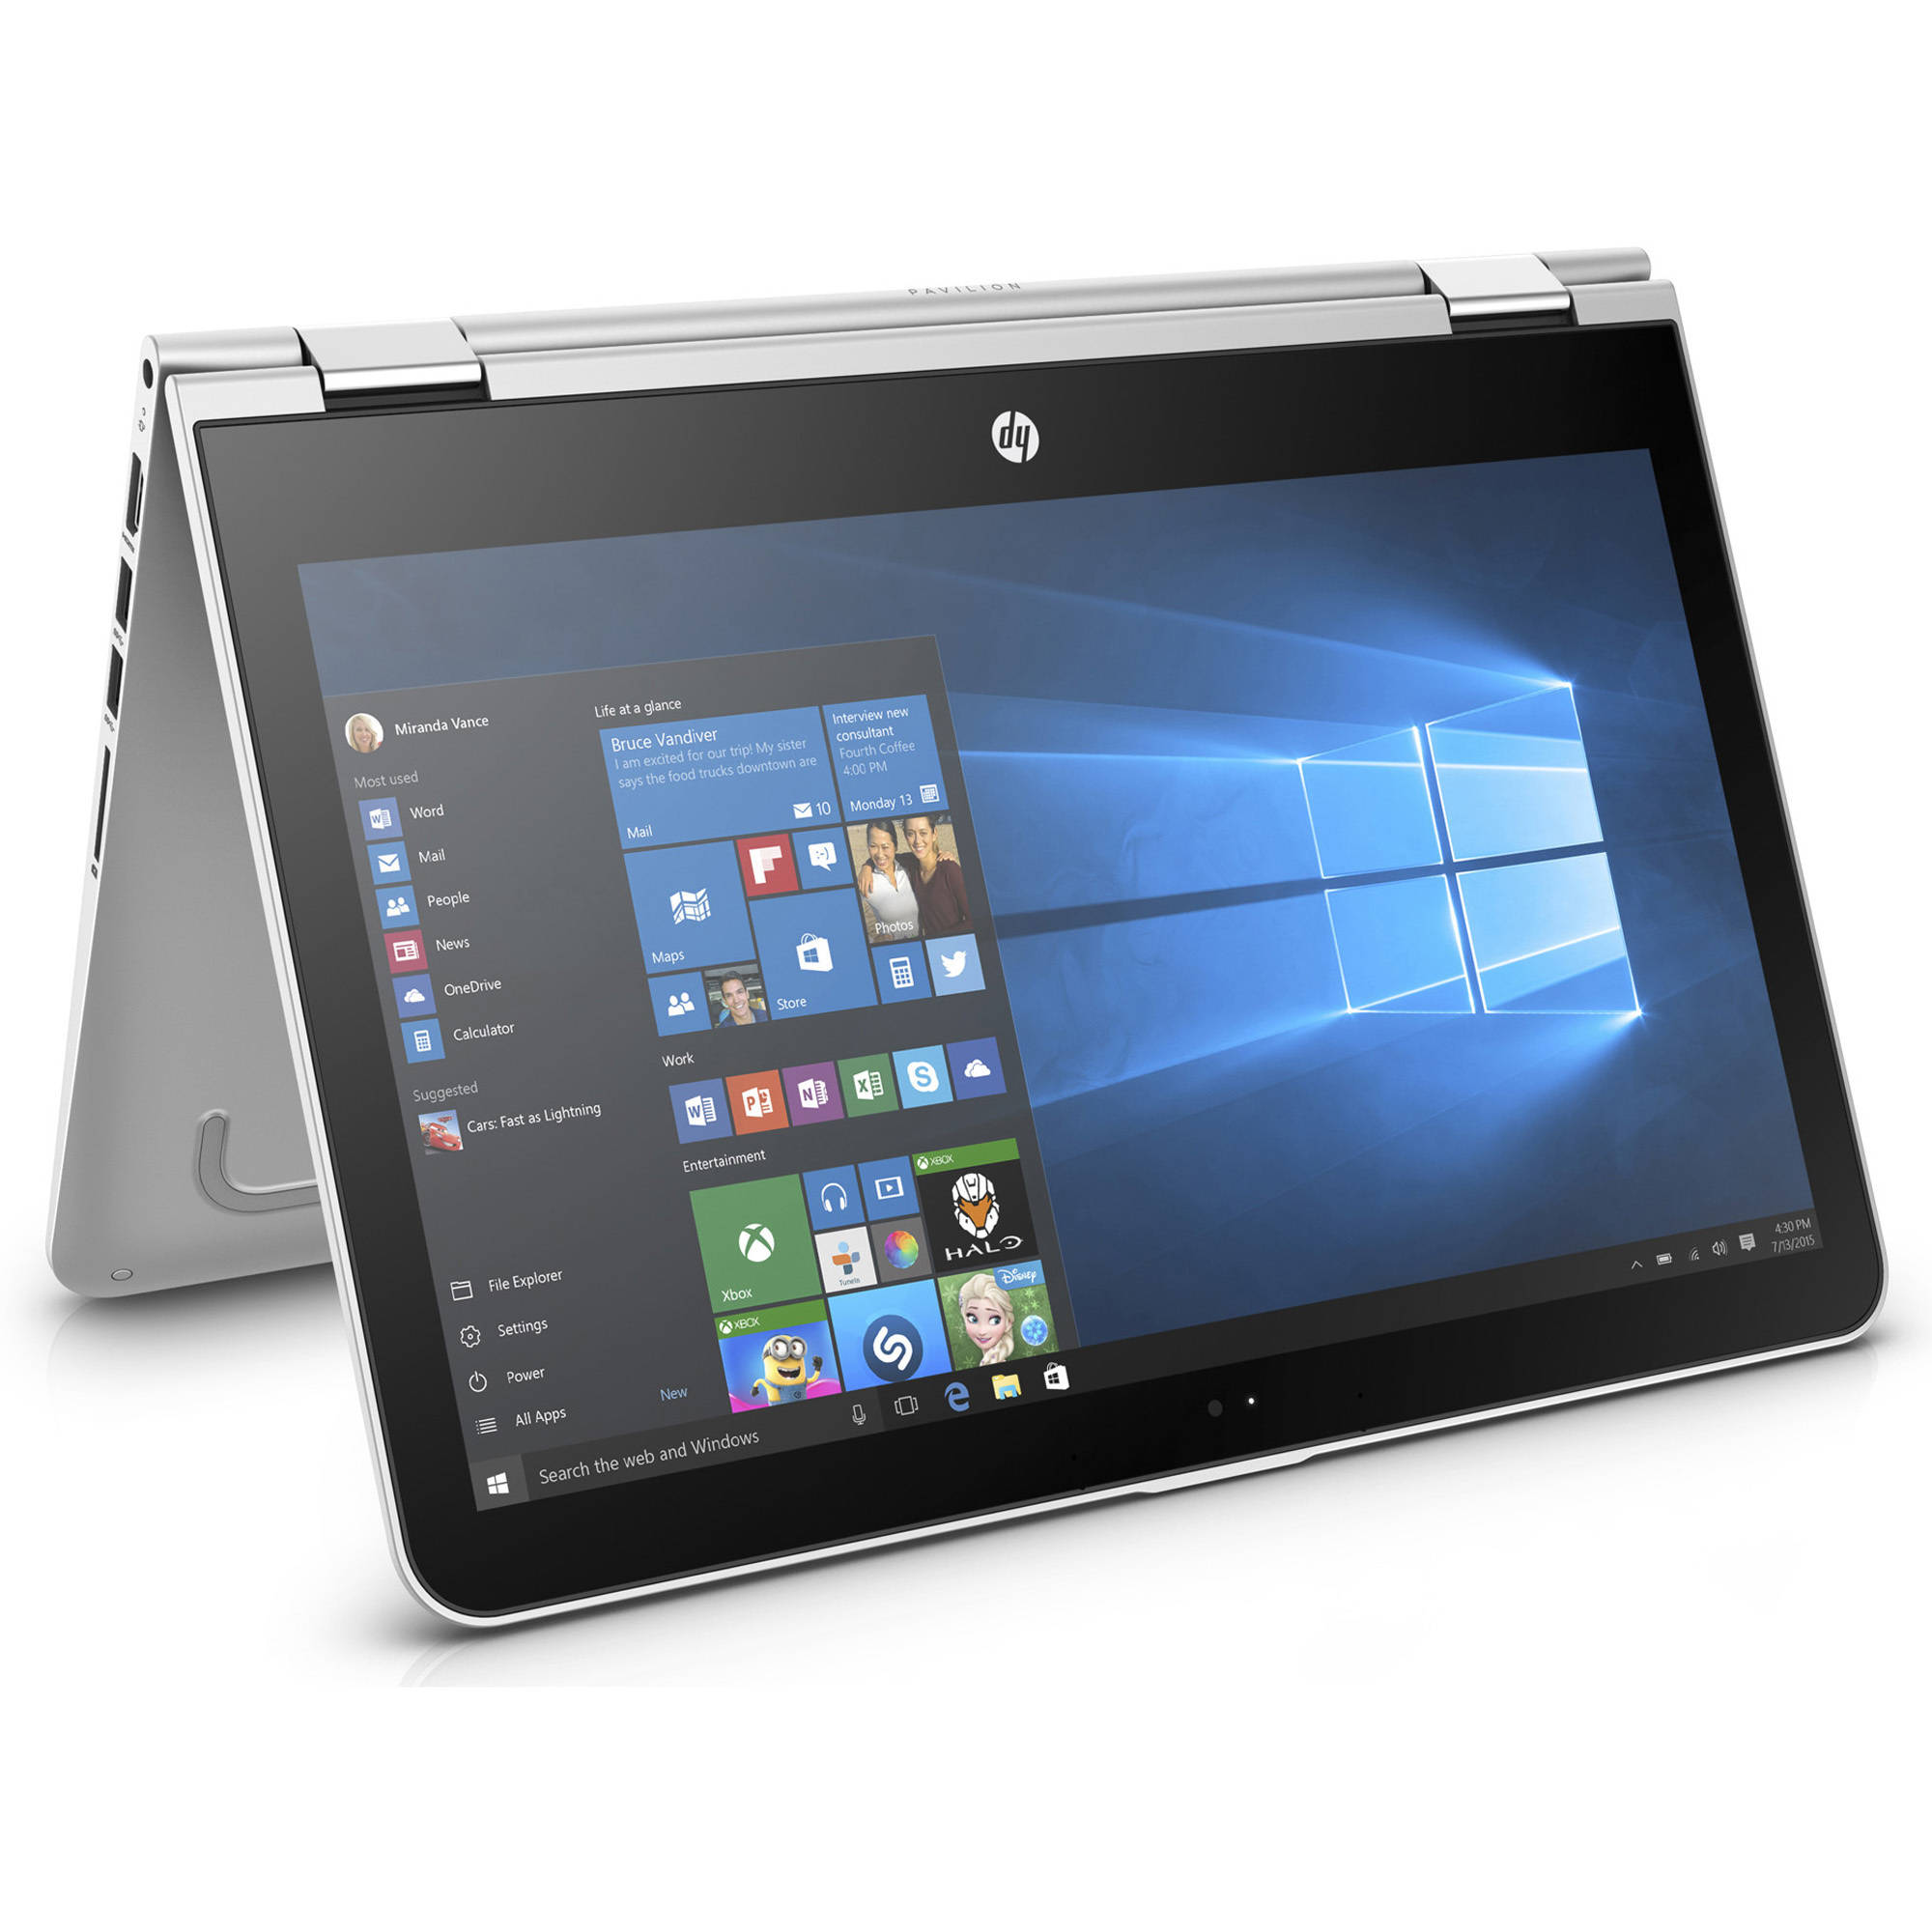 "HP Pavilion X360 13-U163Nr 13.3"" Laptop, 2-in-1, Touchscreen, Windows 10 Home, Intel Core i5-7200U Dual-Core Processor, 8GB RAM, 1TB Hard Drive"